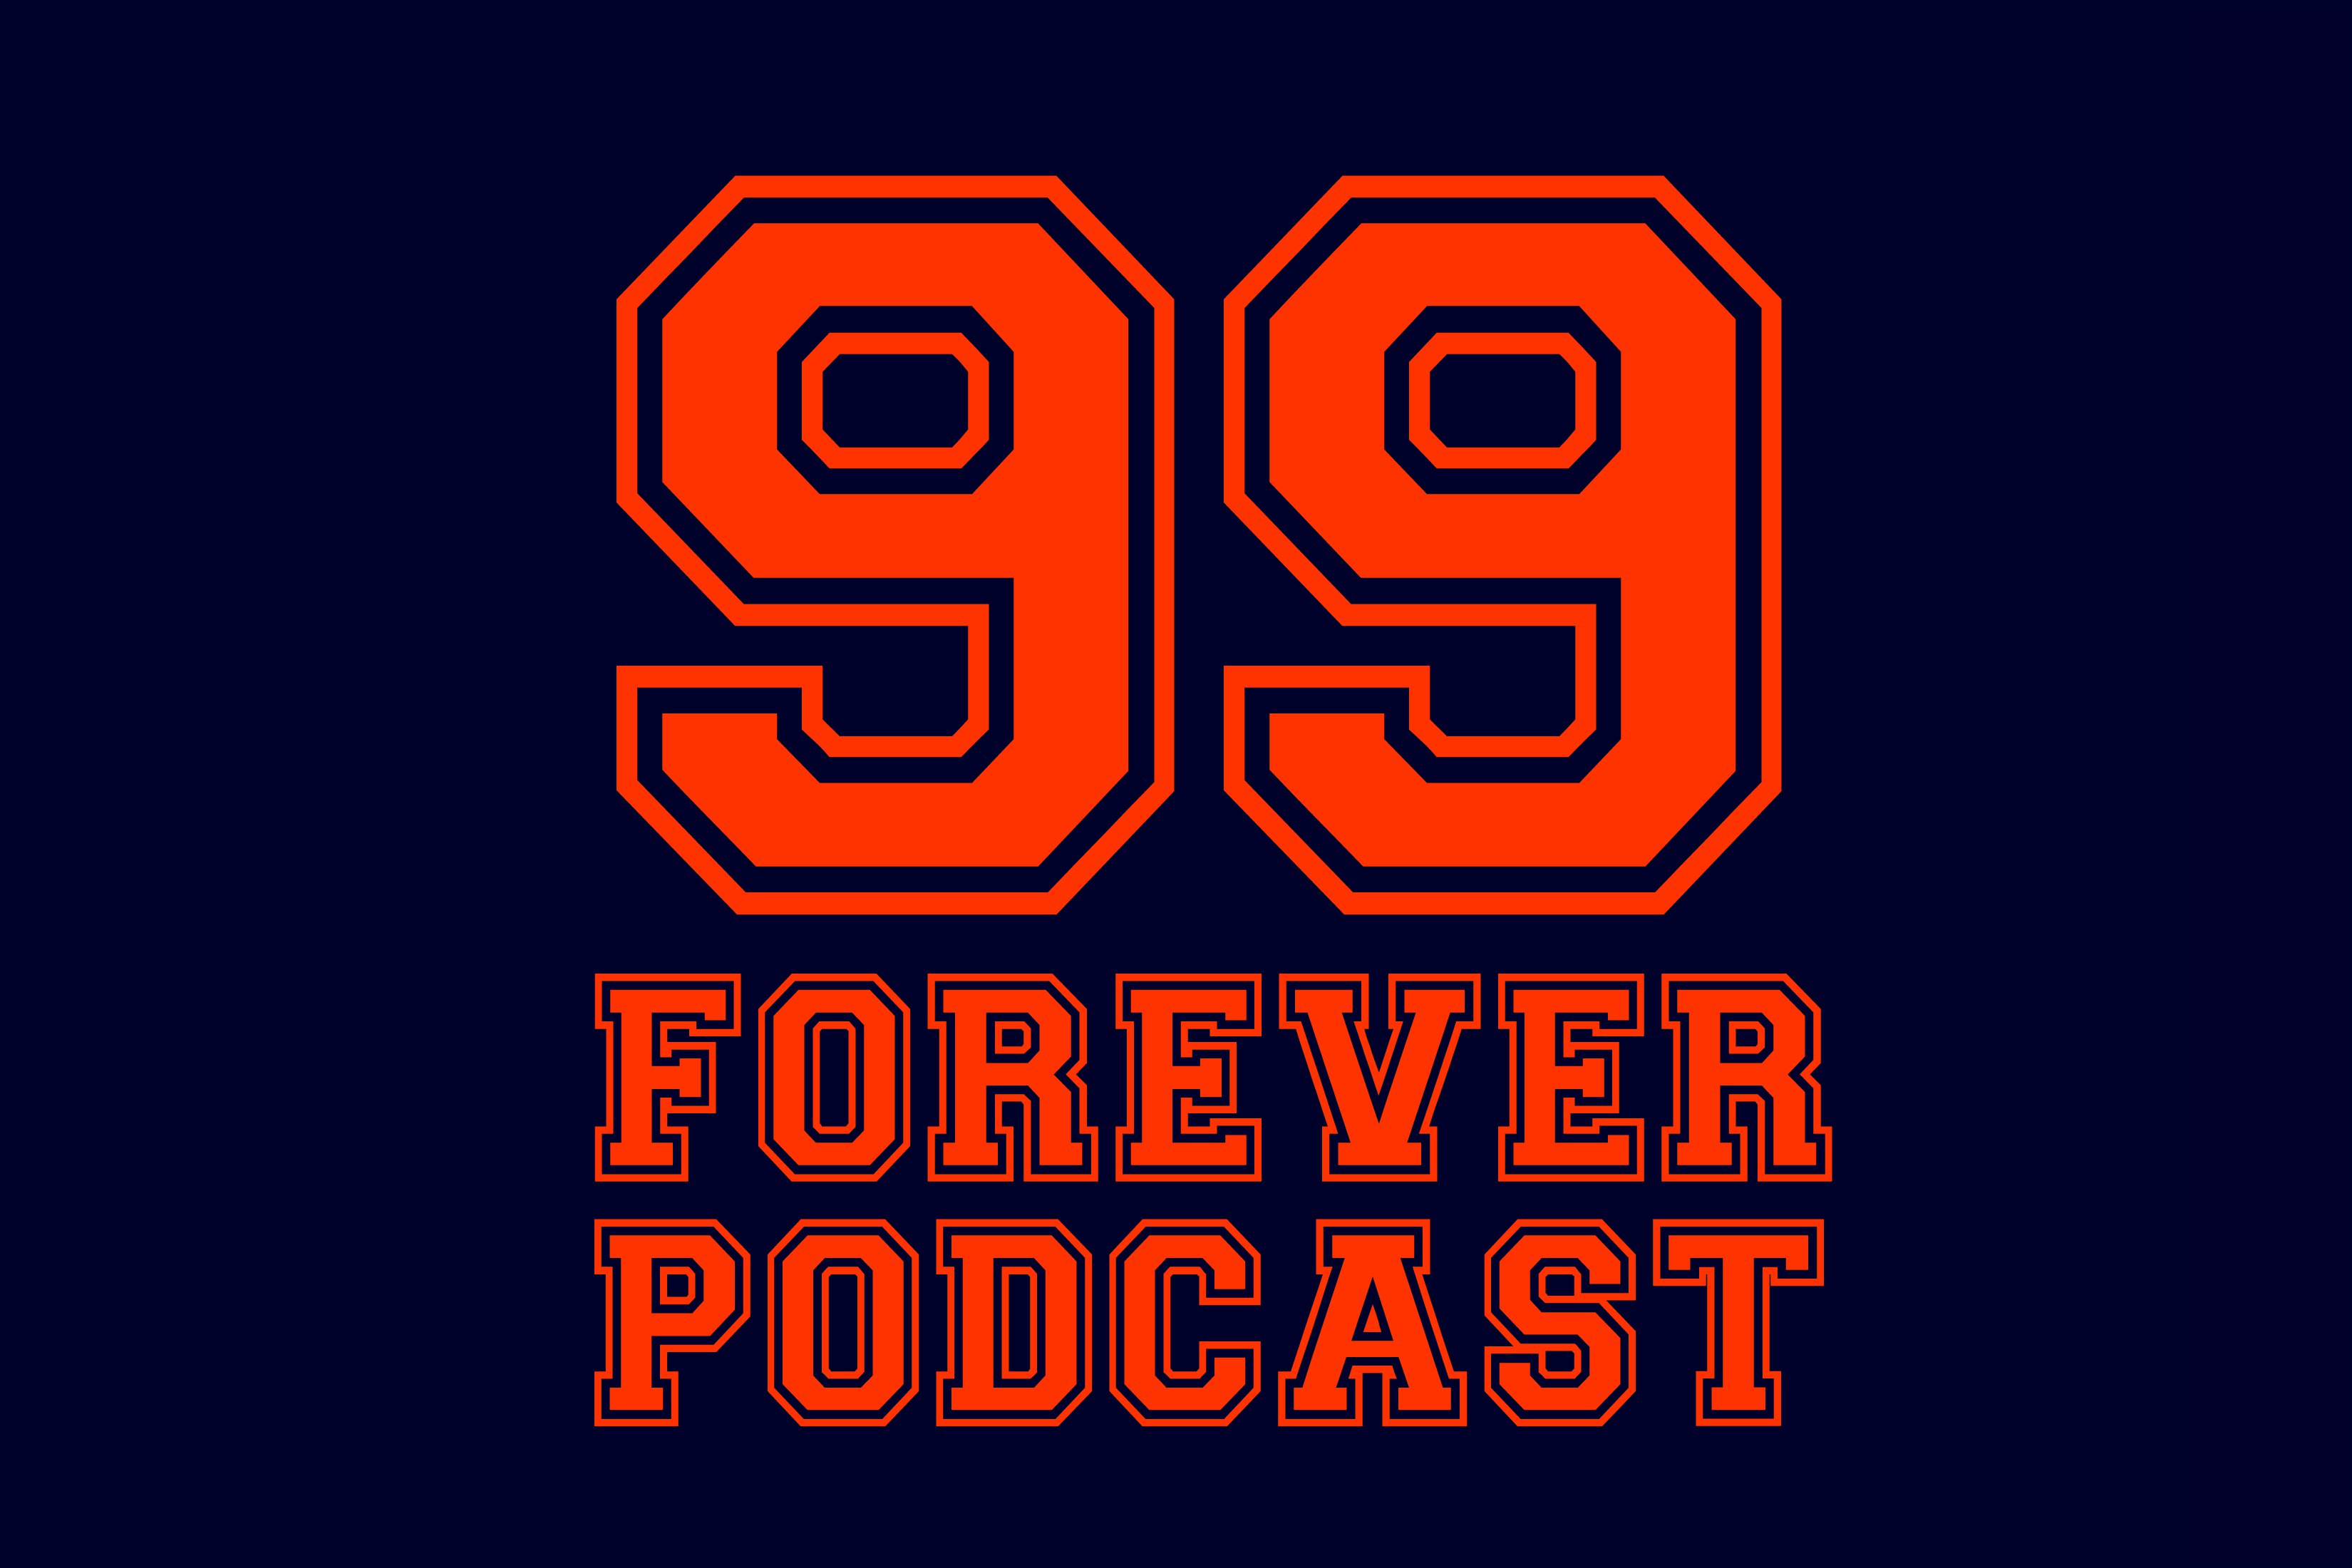 99 FOREVER PODCAST ep 12 with Tyler Campbell show art